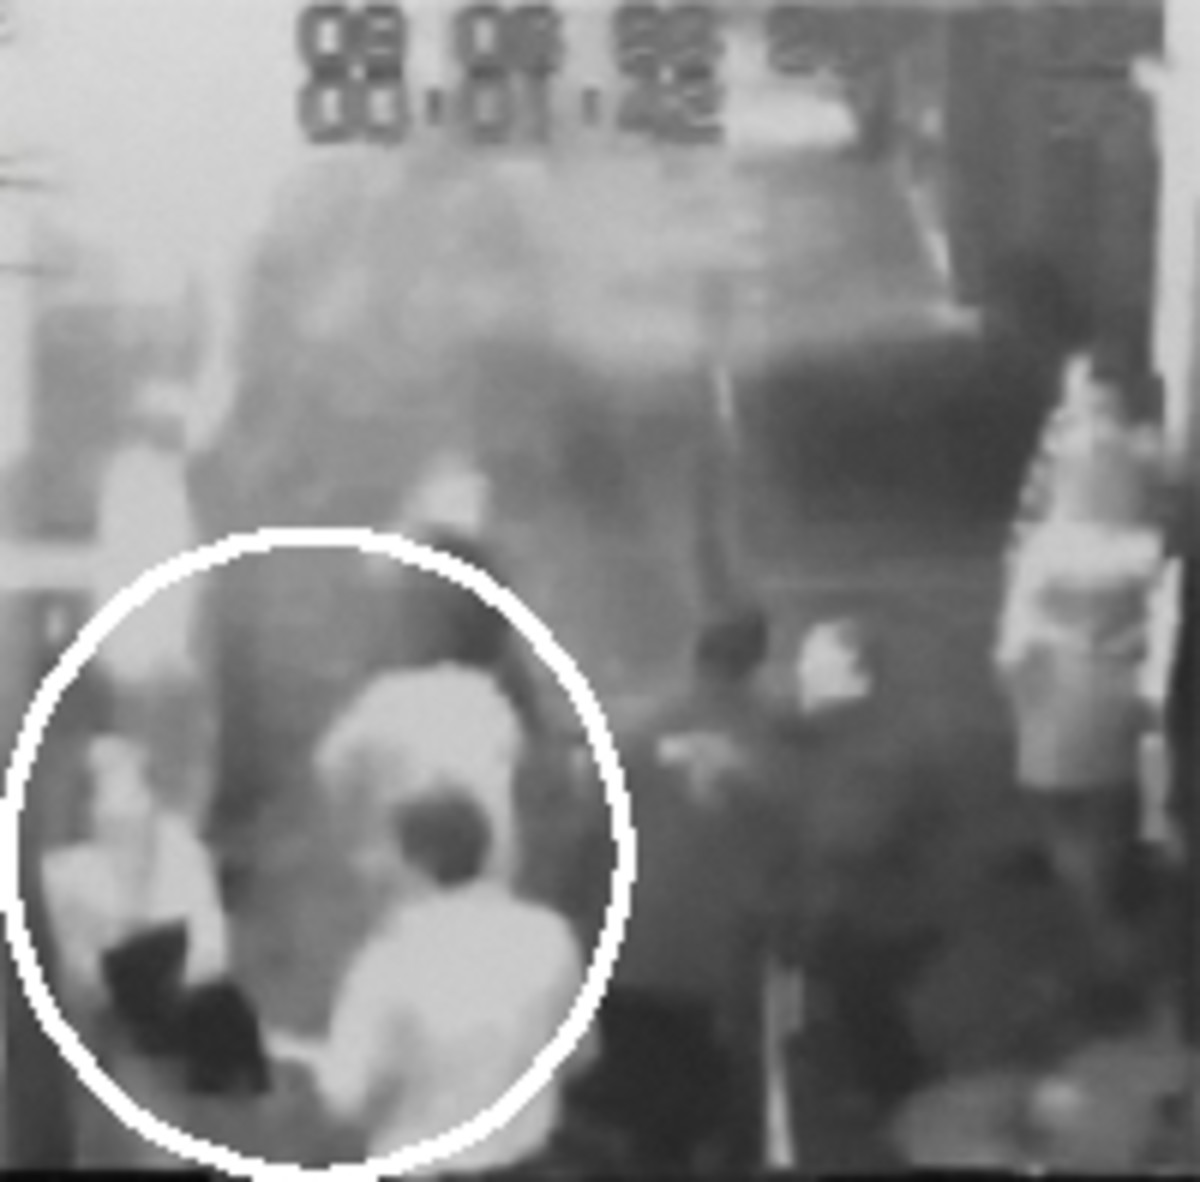 Video of the wanted mystery man